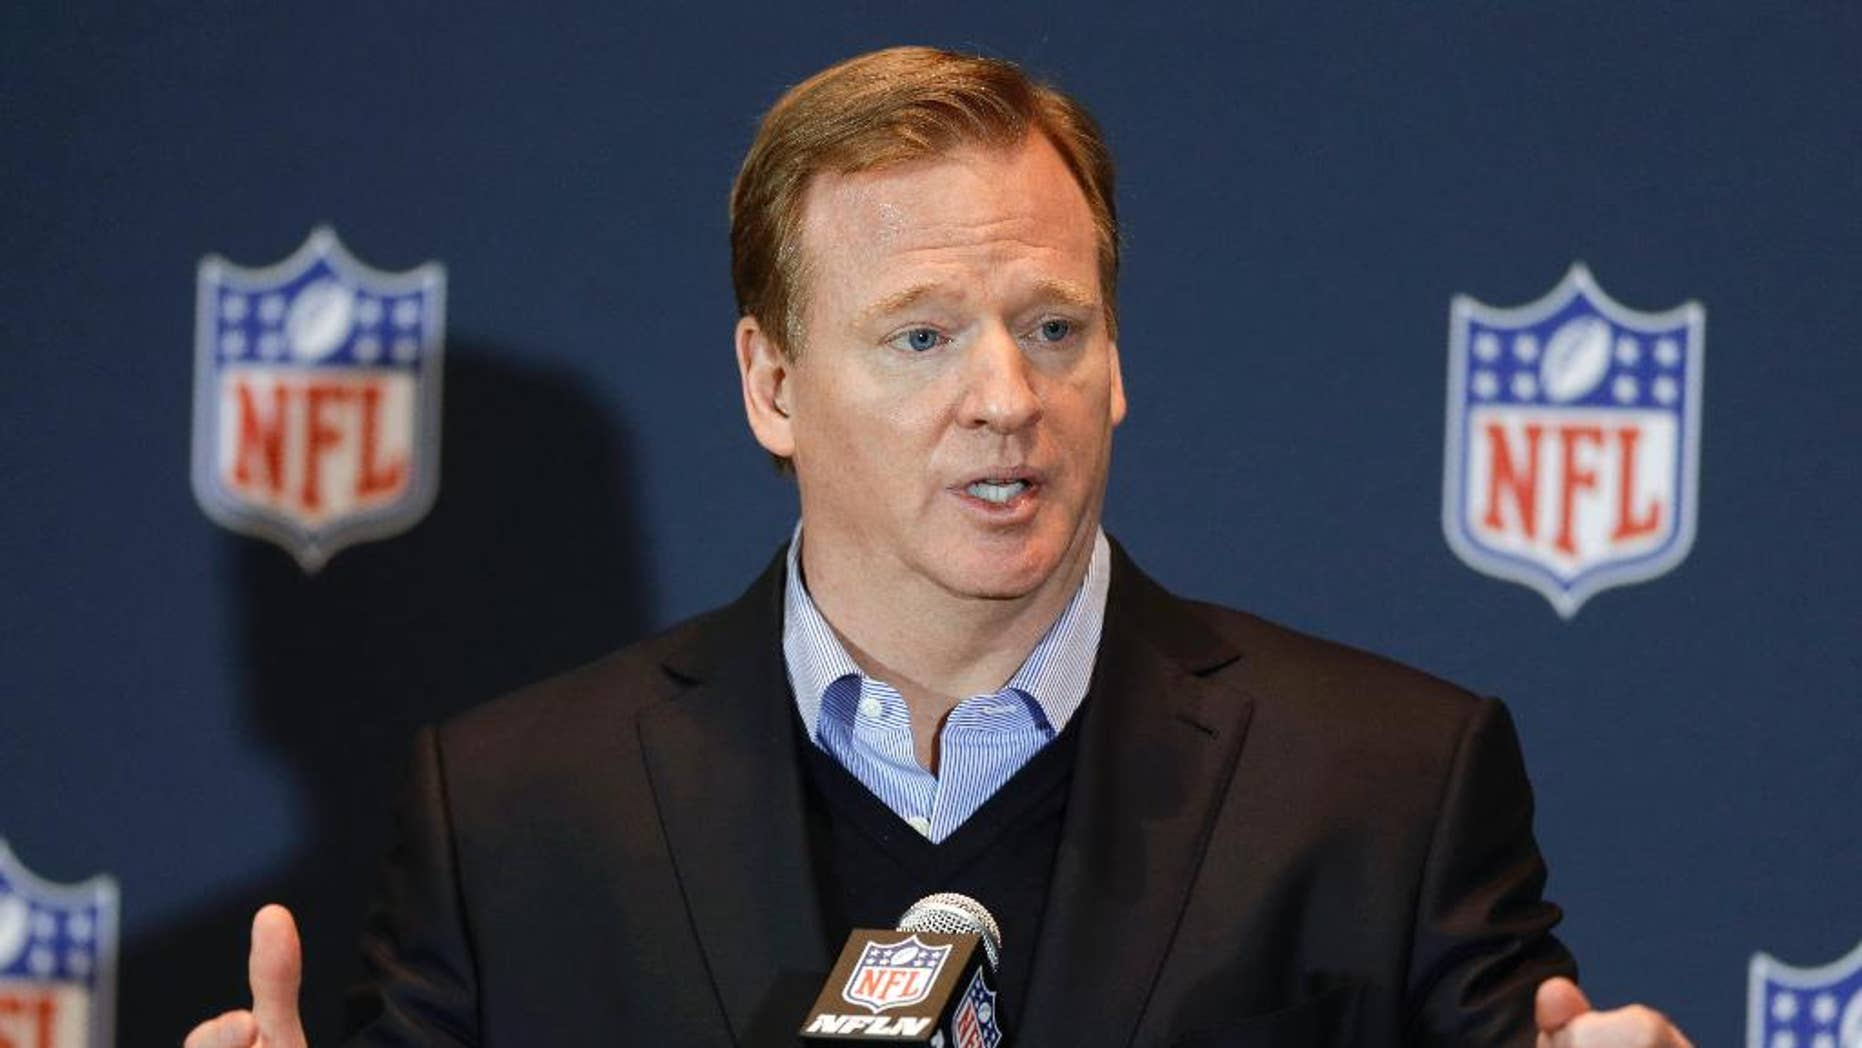 """FILE - in this March 26, 2014, file photo, NFL Commissioner Roger Goodell answers questions during a news conference in Orlando, Fla. Goodell says the league asked for, but was not given, a just-released video showing former Baltimore Ravens running back Ray Rice hitting his then-fiancee on an elevator. Goodell says during an interview with CBS aired Tuesday, Sept. 9, 2014: """"We assumed that there was a video. We asked for video. But we were never granted that opportunity."""" (AP Photo/John Raoux, File)"""